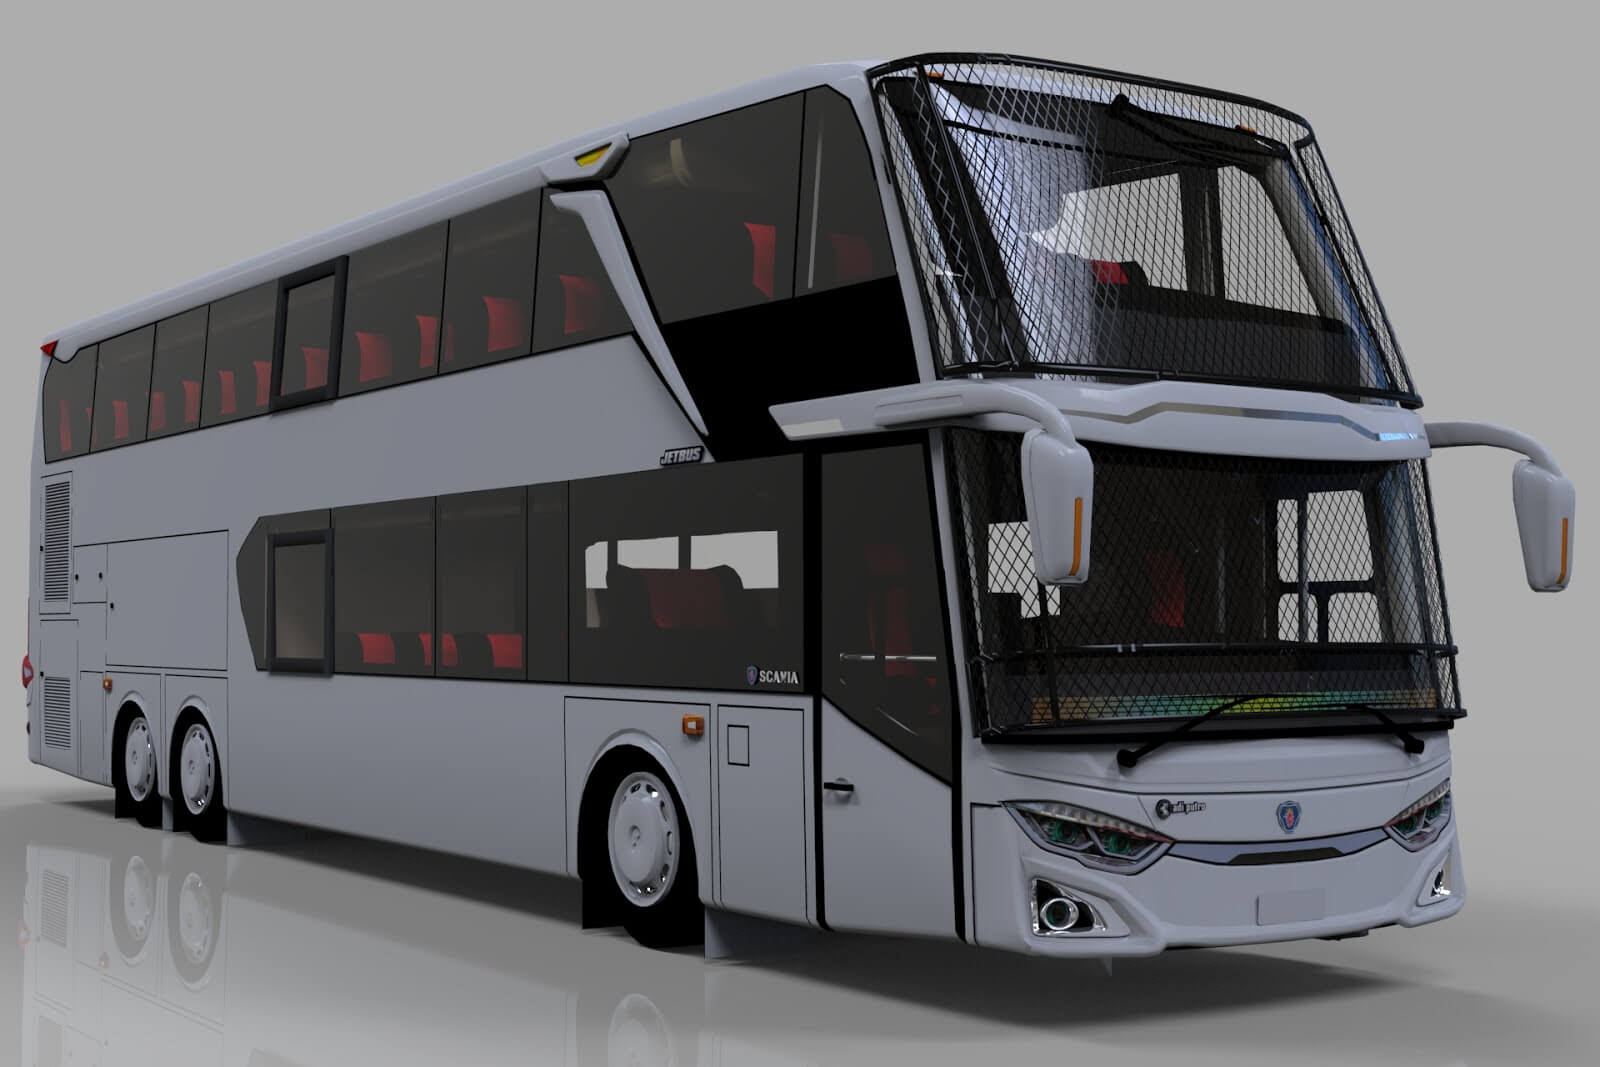 Download Update JetBus 3+ SDD Mod for Bus Simulator Indonesia, Update JetBus 3+ SDD, Bus Mod, Bus Simulator Indonesia Mod, BUSSID mod, JB SDD 3+ Voyager, JB3+ bus Mod, JetBus Mod for BUSSID, JetBus SDD 3+, JetBus SDD 3+ Mod for BUSSID, JETBUS SDD 3+ VOYAGER, JetBus3+, MD Creation, SDD Bus Mod, SGCArena, Update JetBus 3+ SDD, Vehicle Mod, ZTOM